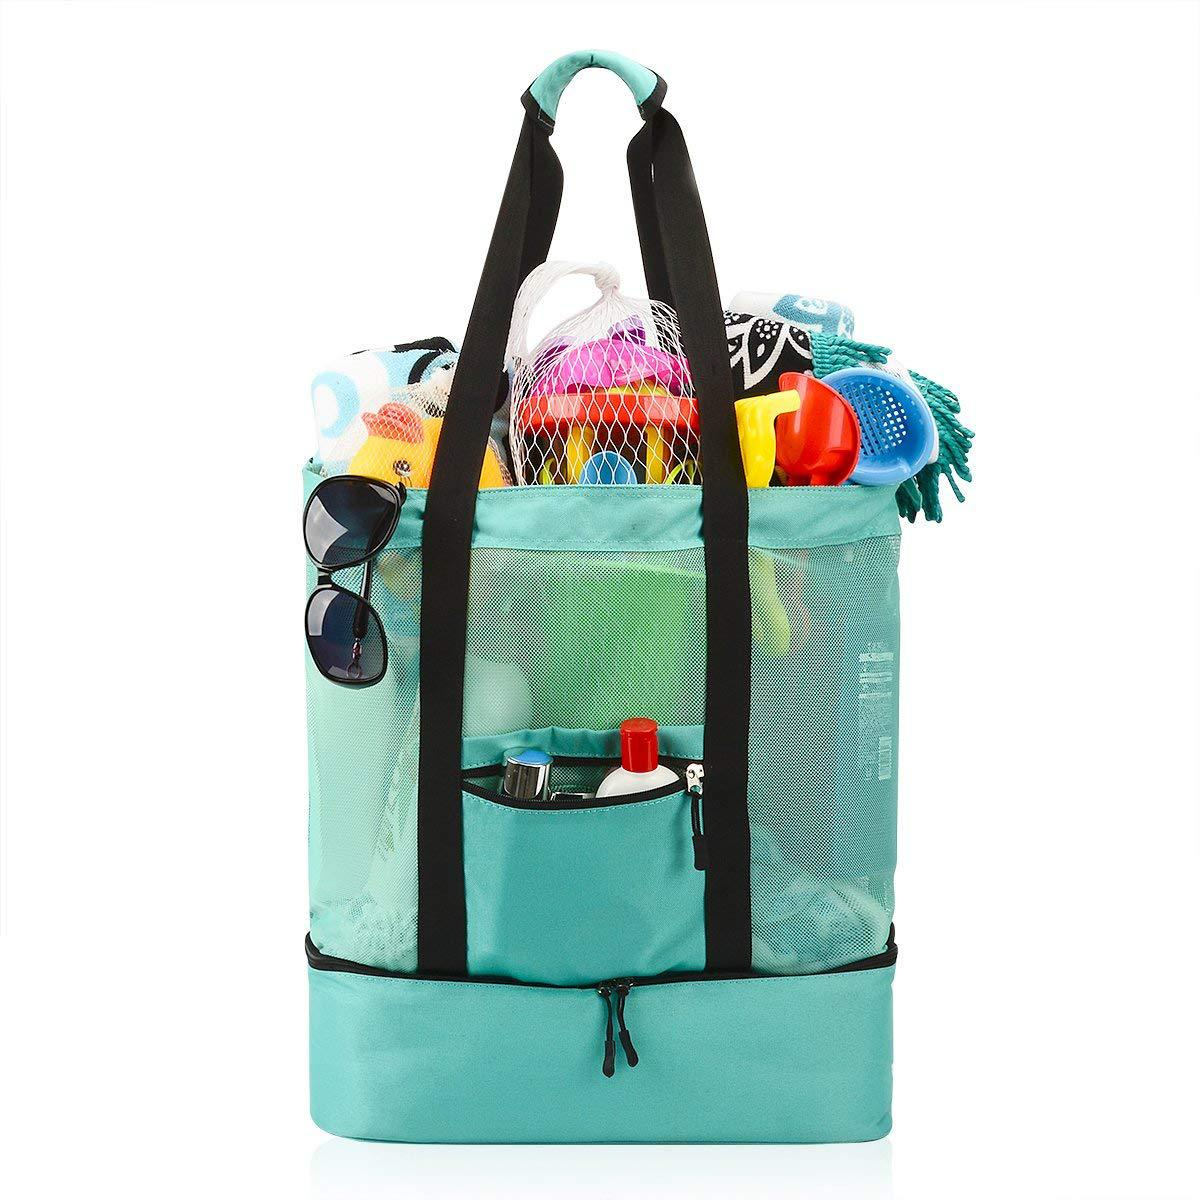 Ylouqumuf Mesh Beach Tote Bag with Zipper Top and Insulated Picnic Cooler Turquoise